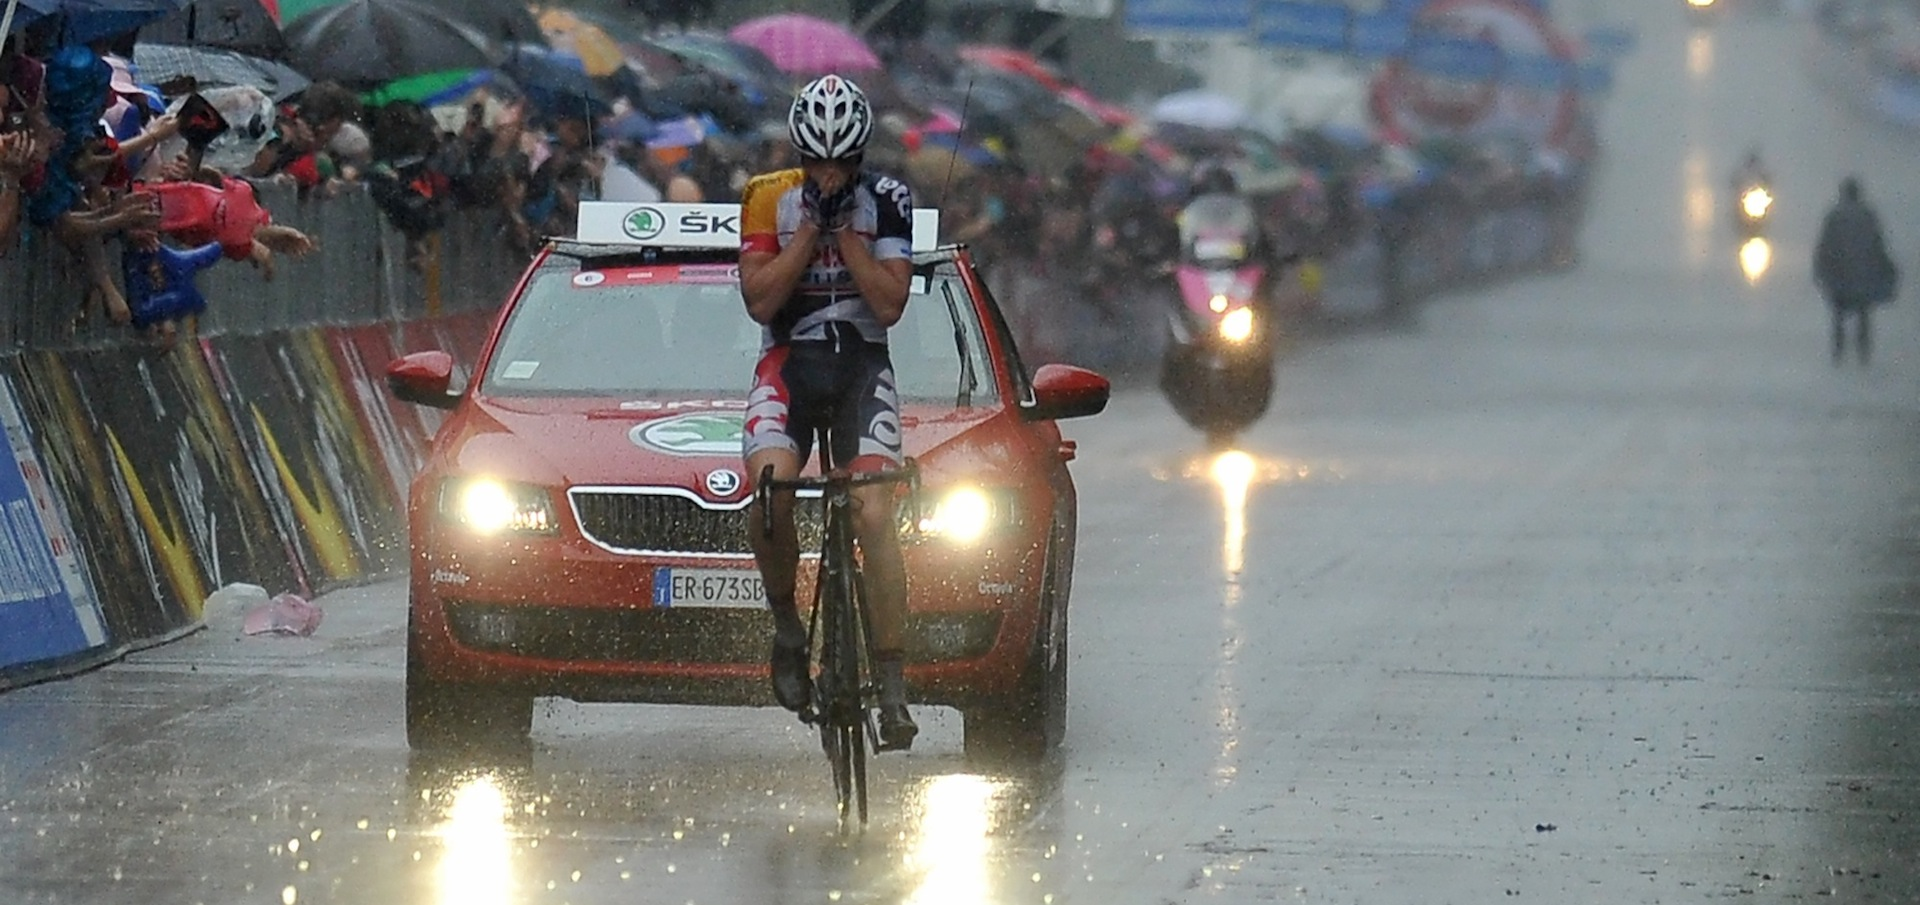 Wet and WildHansen wins his first stage in a Grand Tour